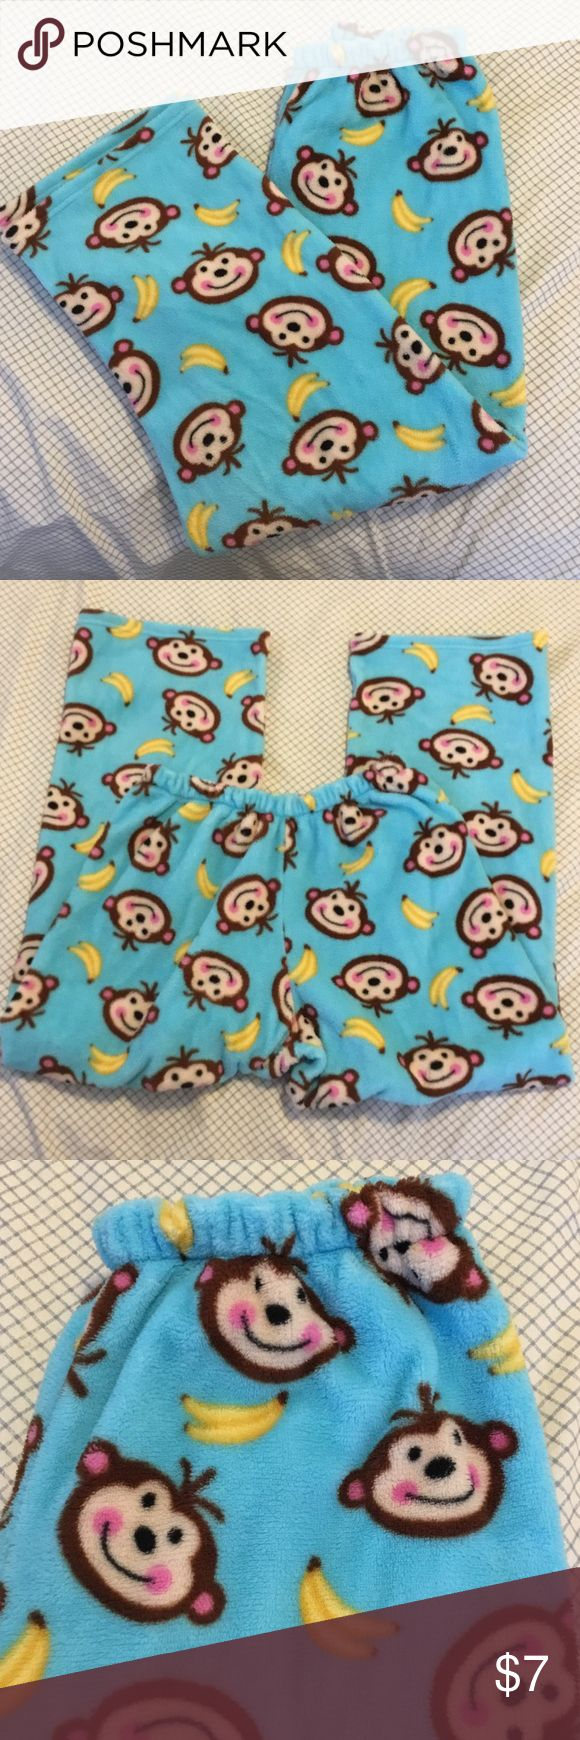 NEW LISTING. NEW Directions PJ bottom. New Directions pj bottom in excellent condition. Pretty colors of light blue with yellow bananas and monkey faces. Really cute. Wore once but too warm for me. New Directions Intimates & Sleepwear Pajamas